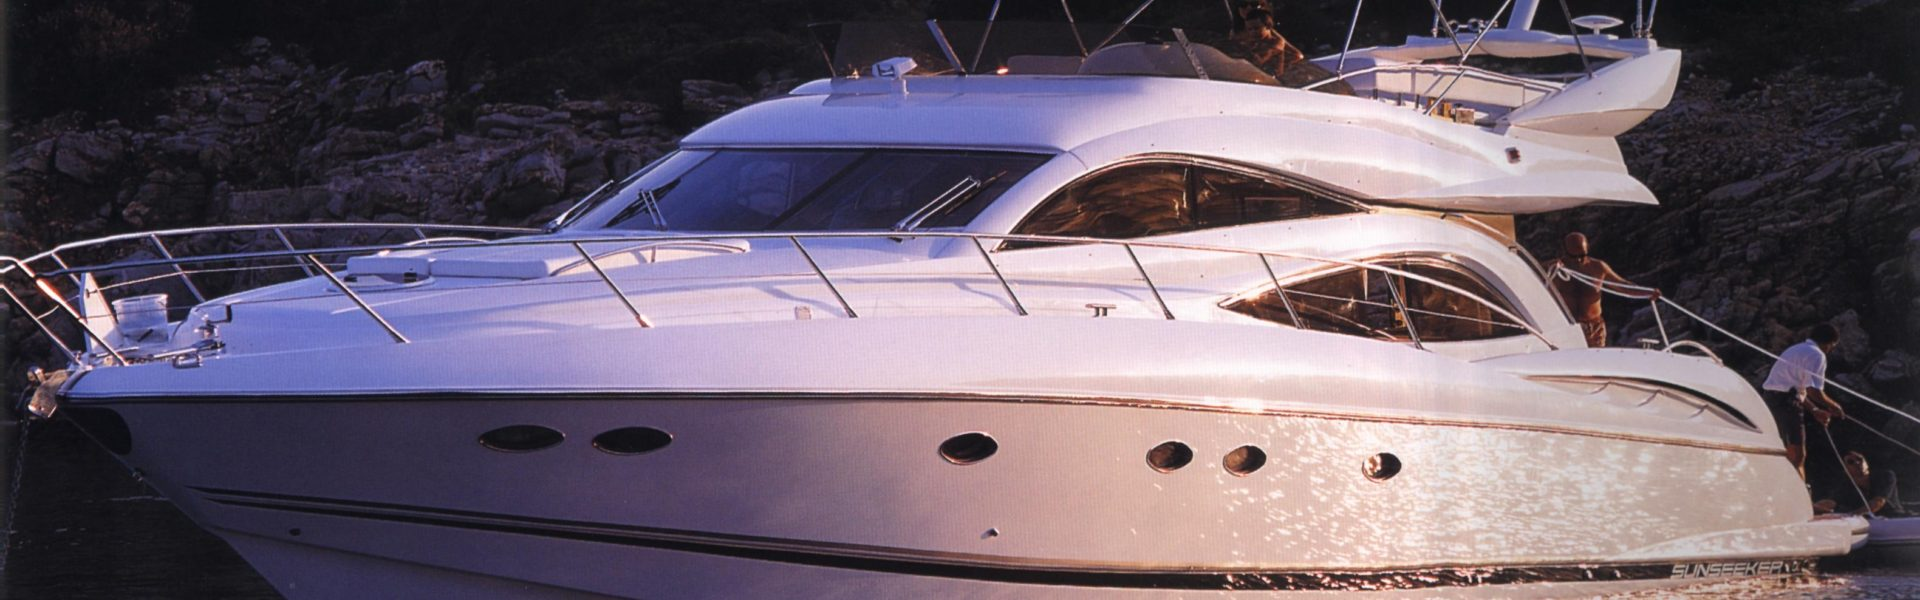 Sunseeker Manhattan 56 1